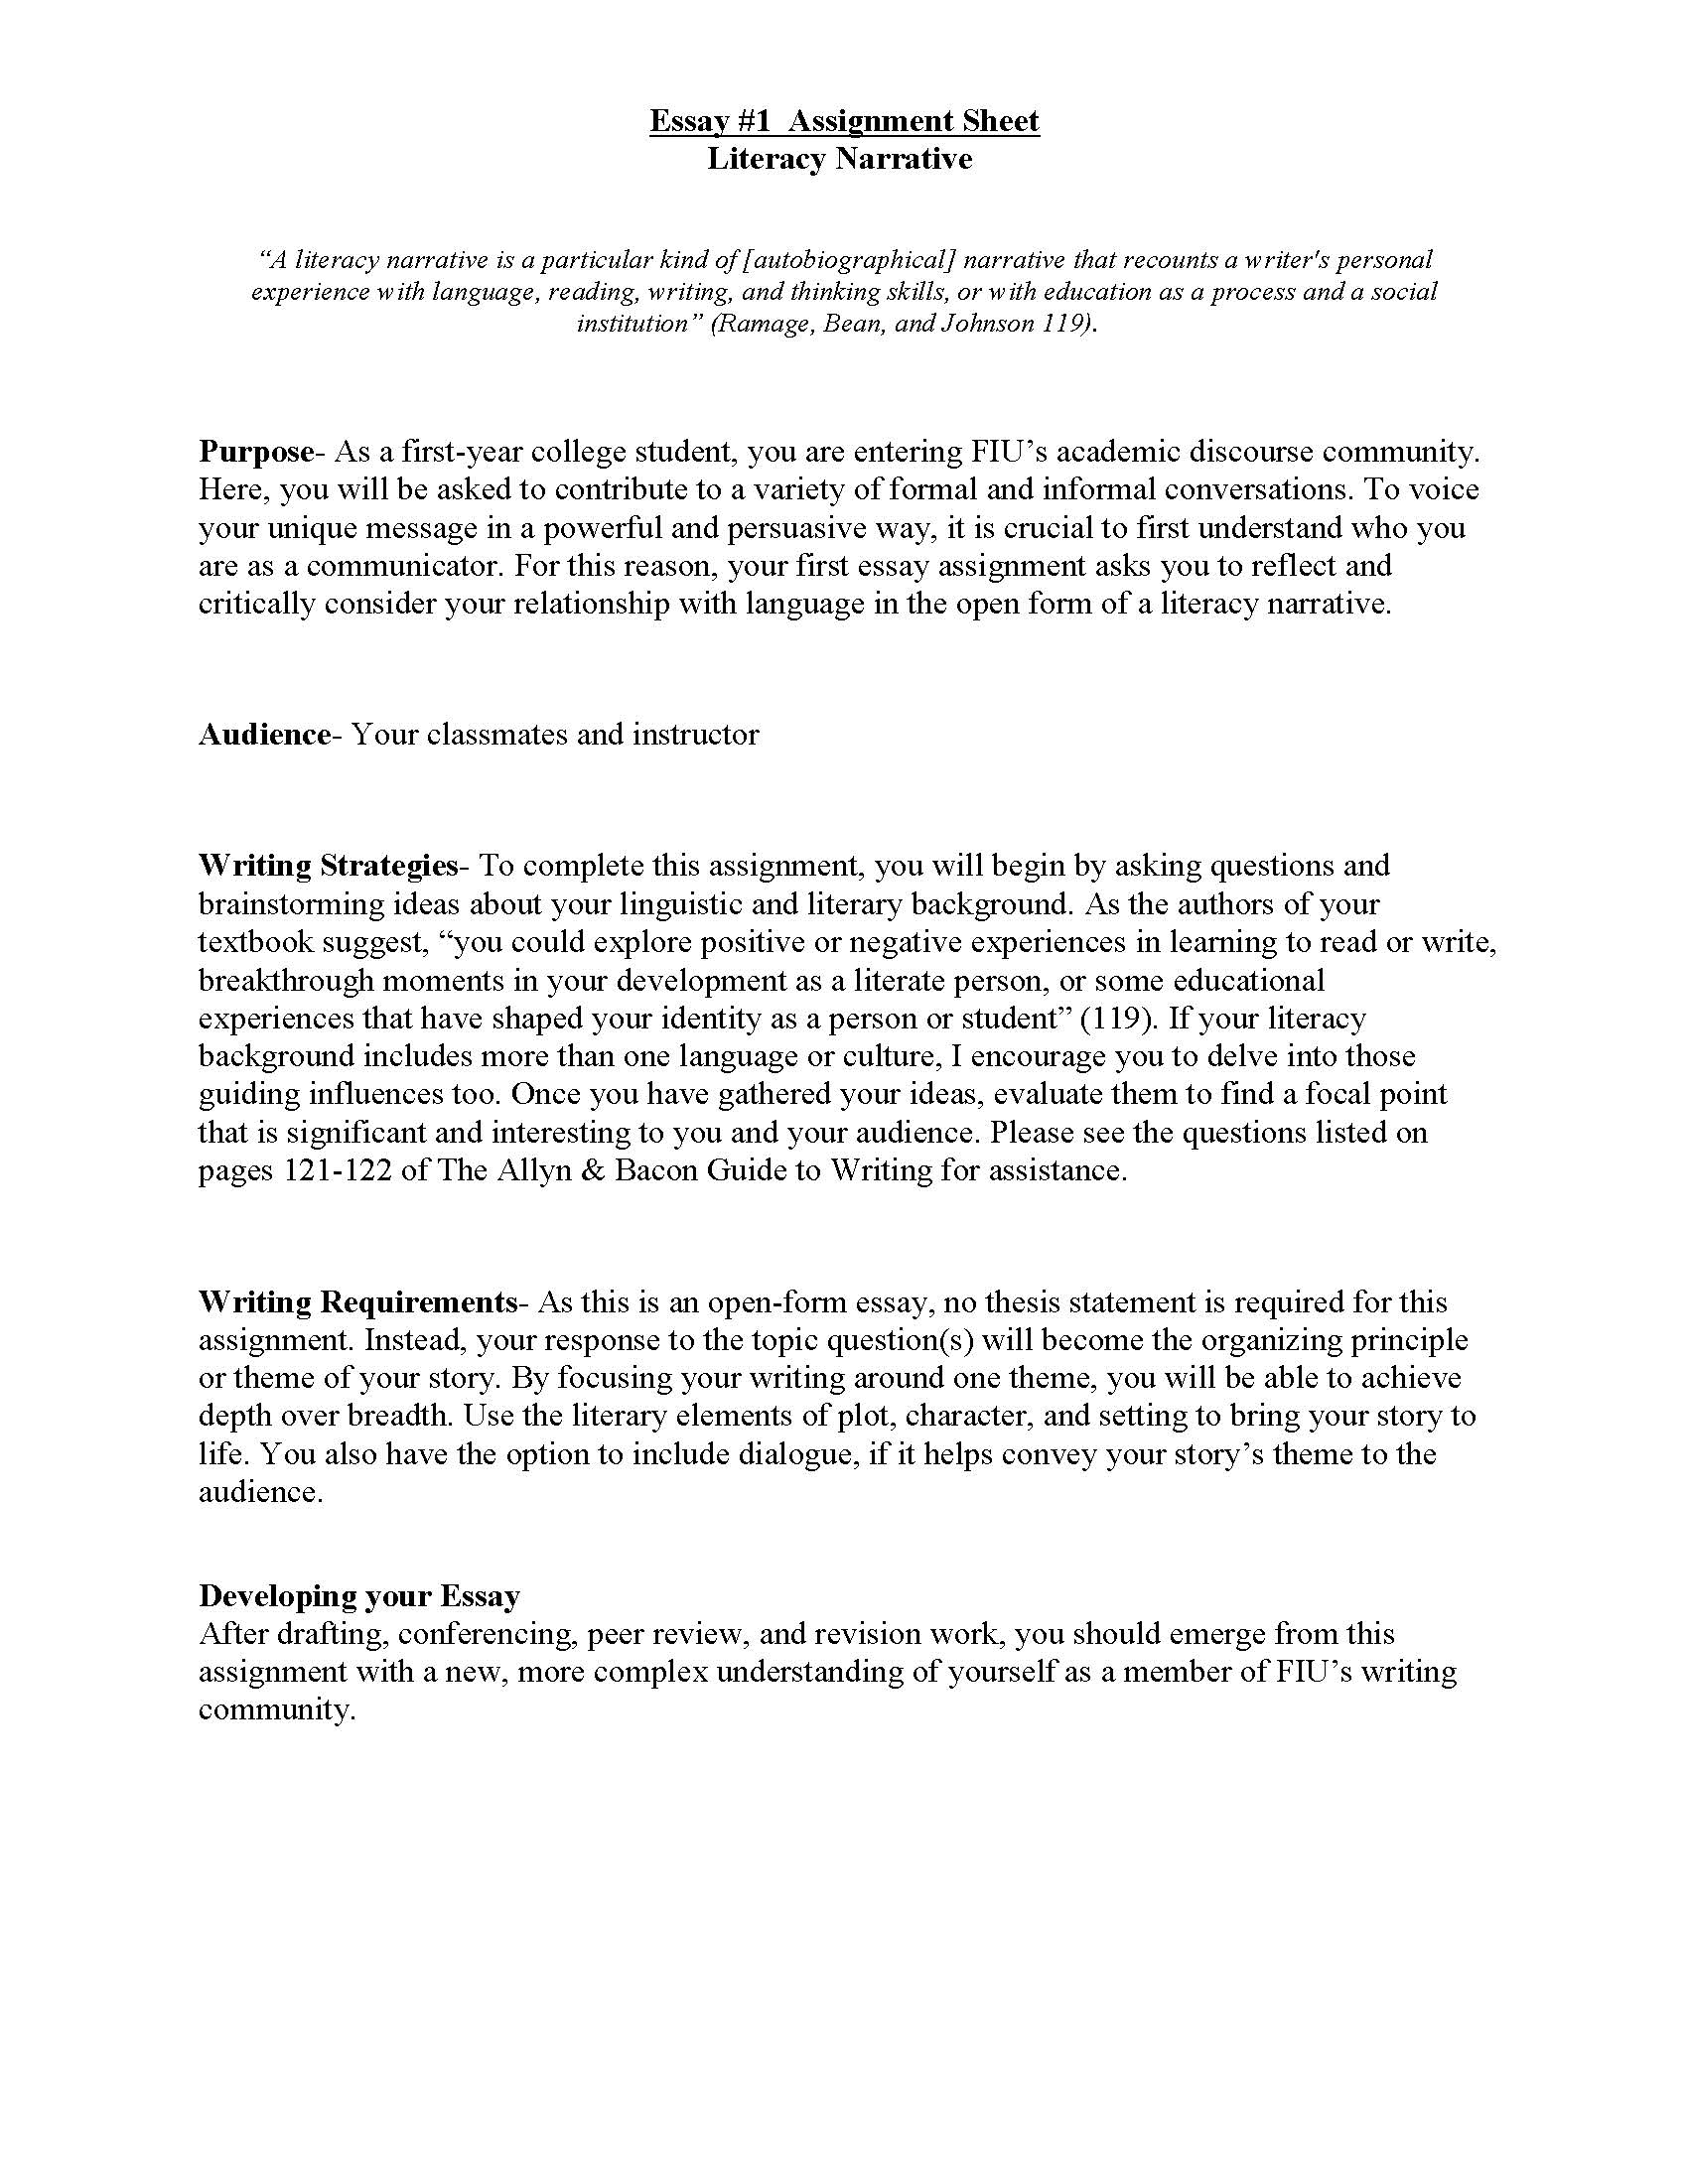 002 Essay Example Literacy Narrative Unit Assignment Spring 2012 Page 1 Awful Information Topics Titles Media Examples Full